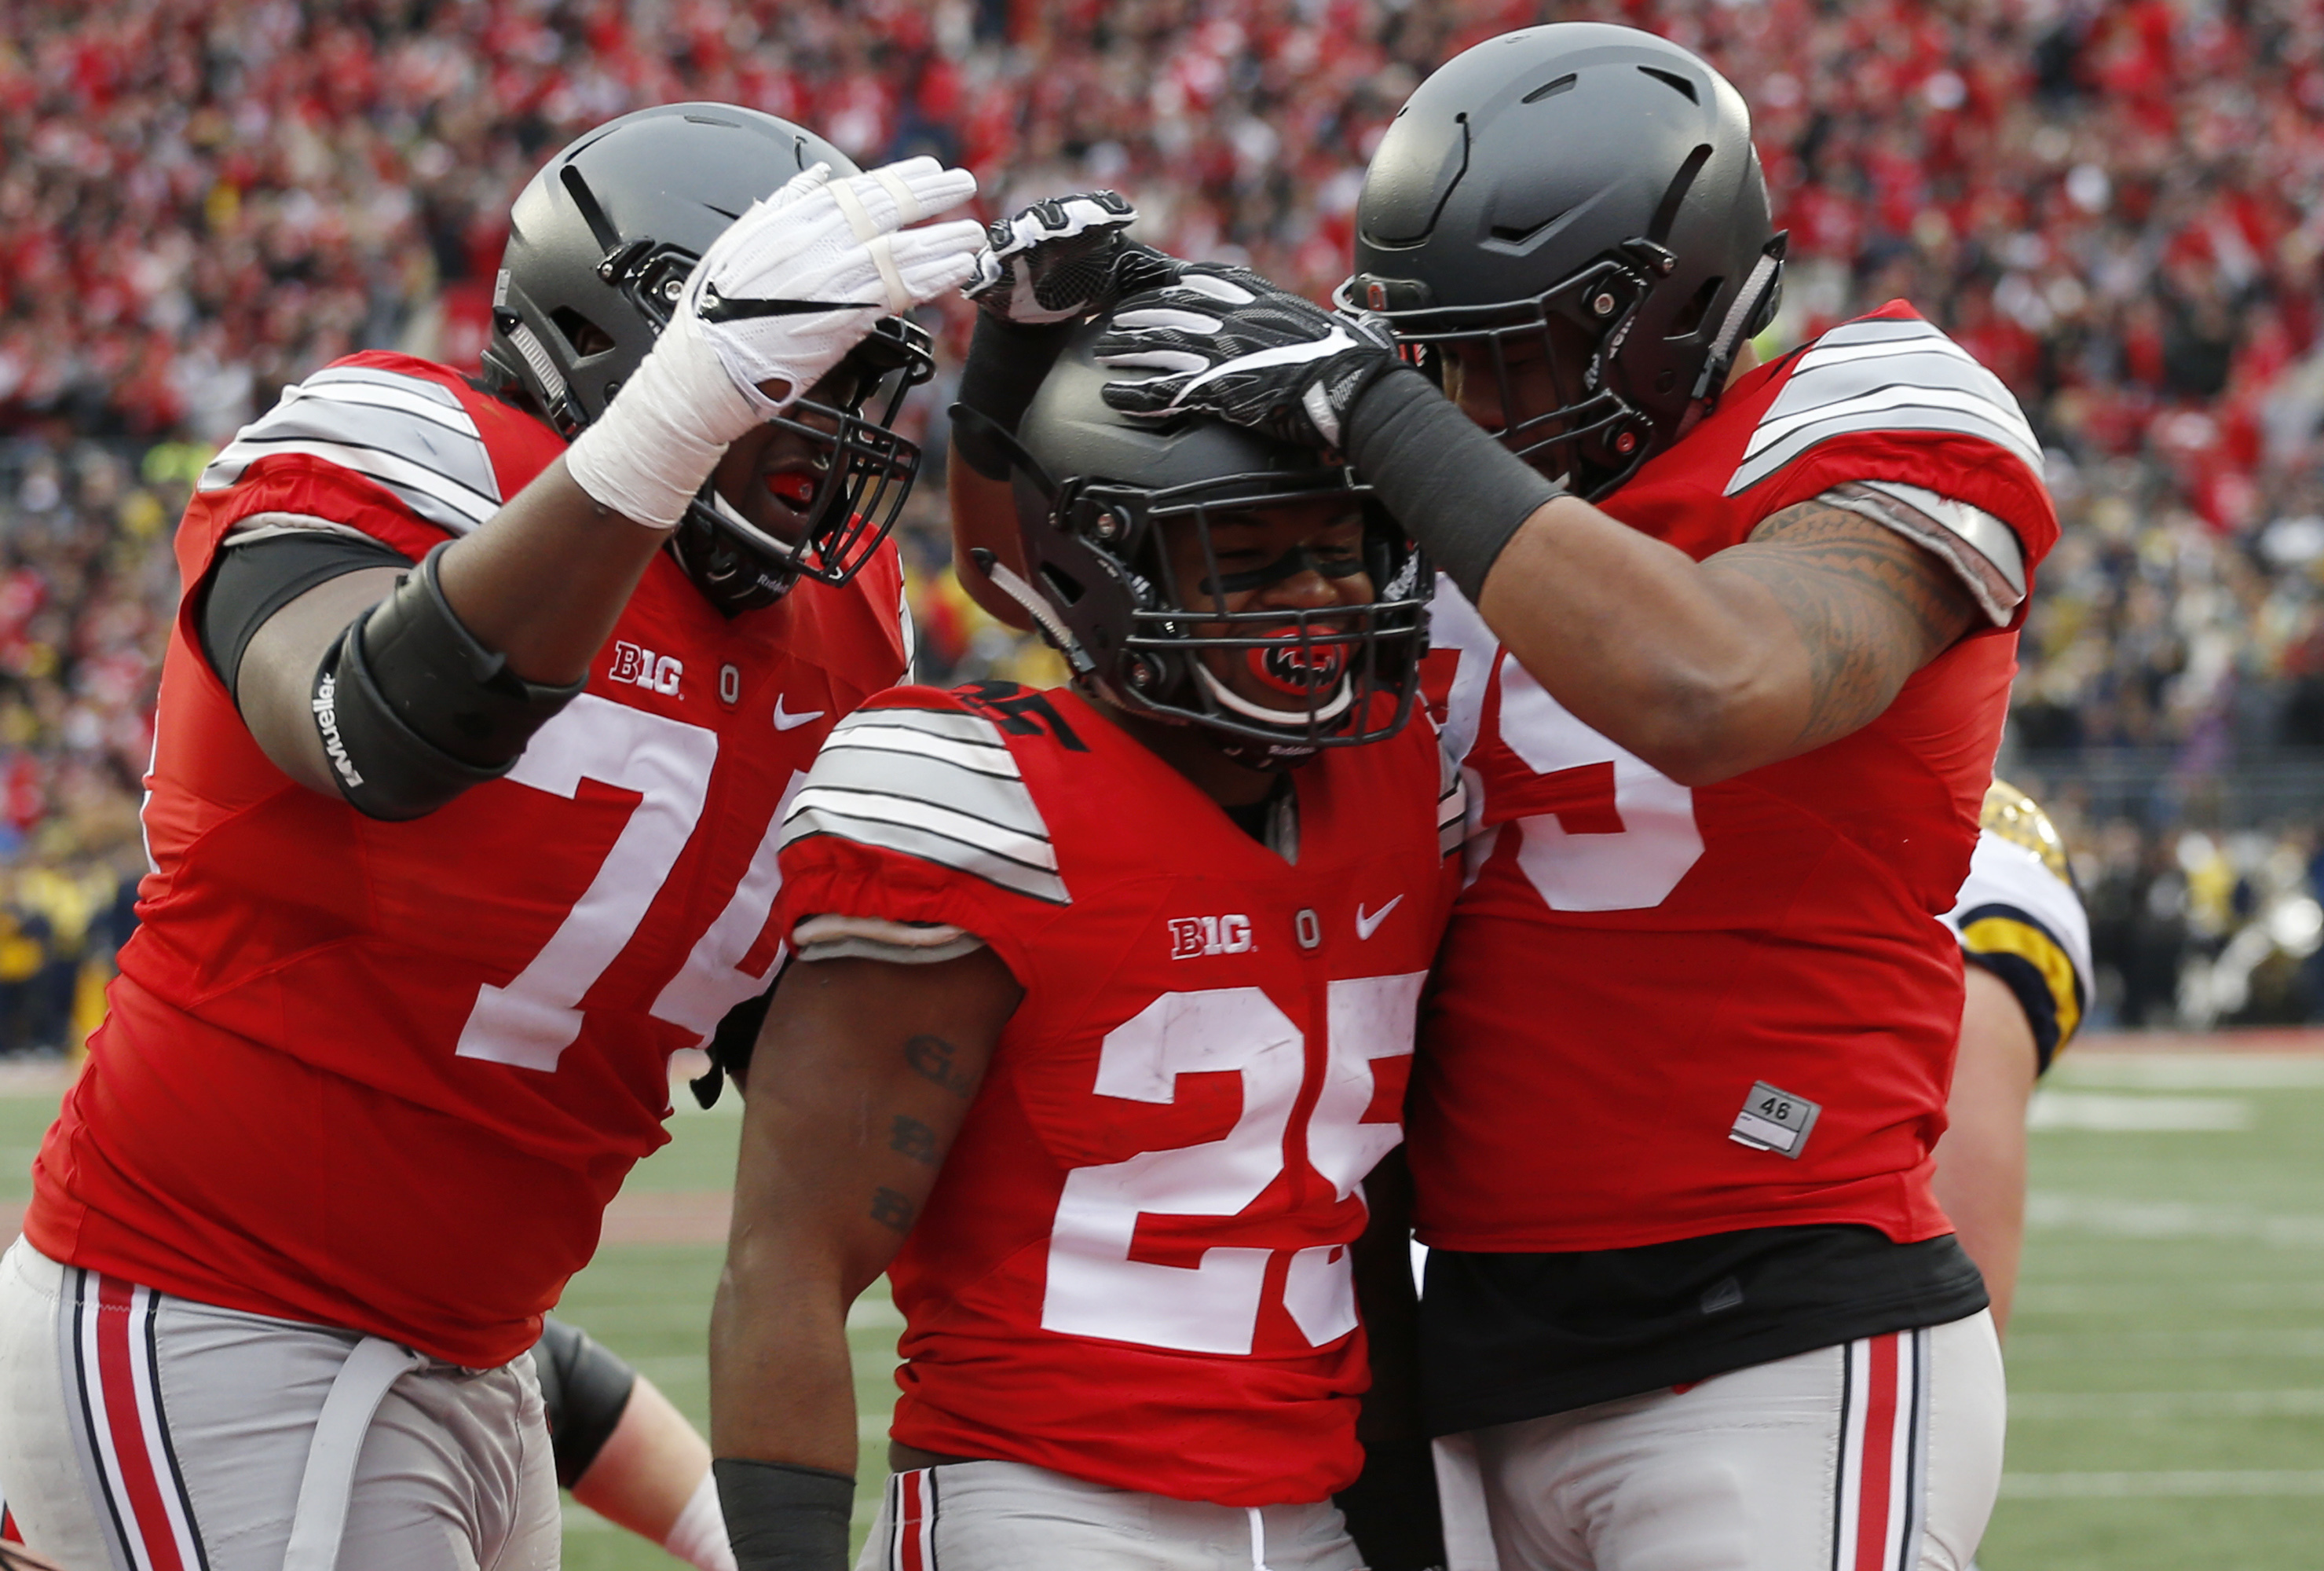 FILE - In this Nov. 26, 2016, file photo, Ohio State running back Mike Weber, center, celebrates his touchdown against Michigan with teammates Jamarco Jones, left, and Luke Farrell during the second half of an NCAA college football game in Columbus, Ohio.